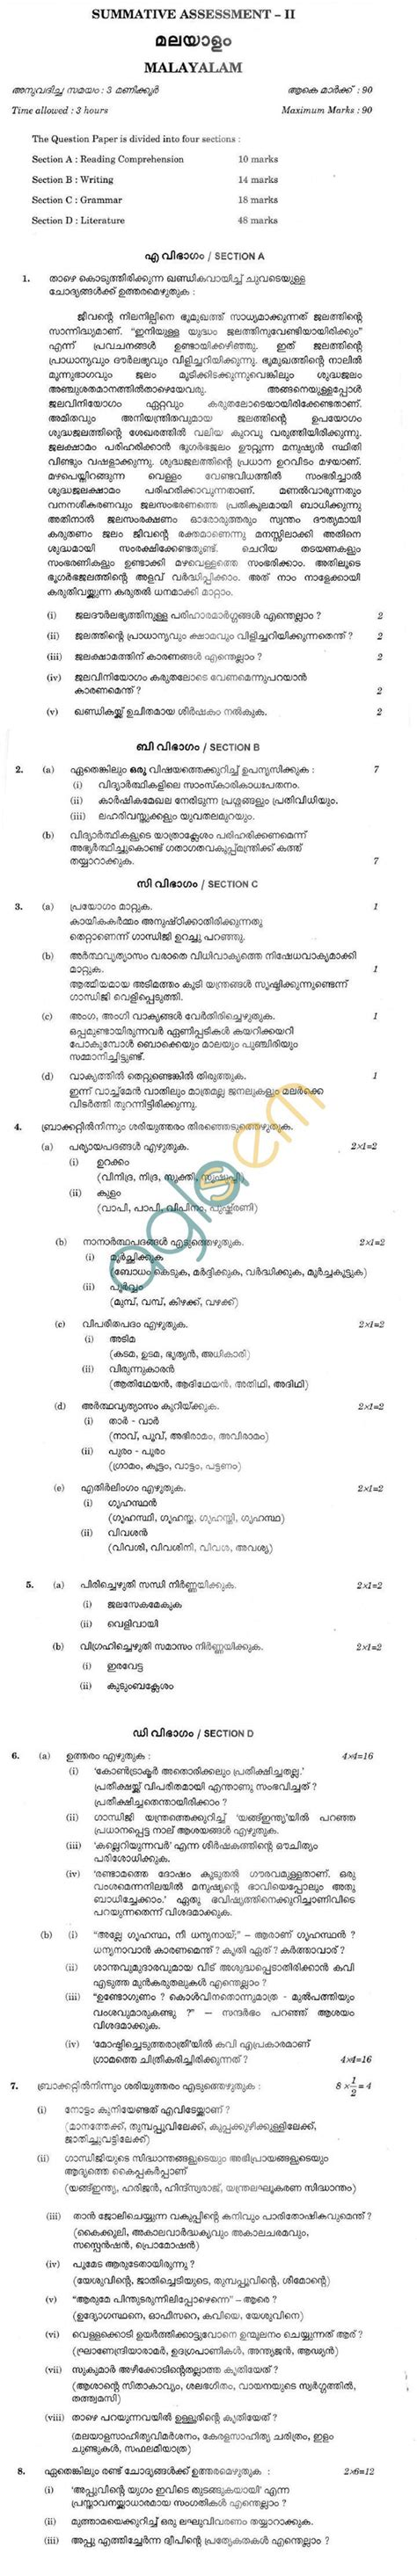 pattern word meaning in malayalam cbse sle paper for class 10 sa2 malayalam